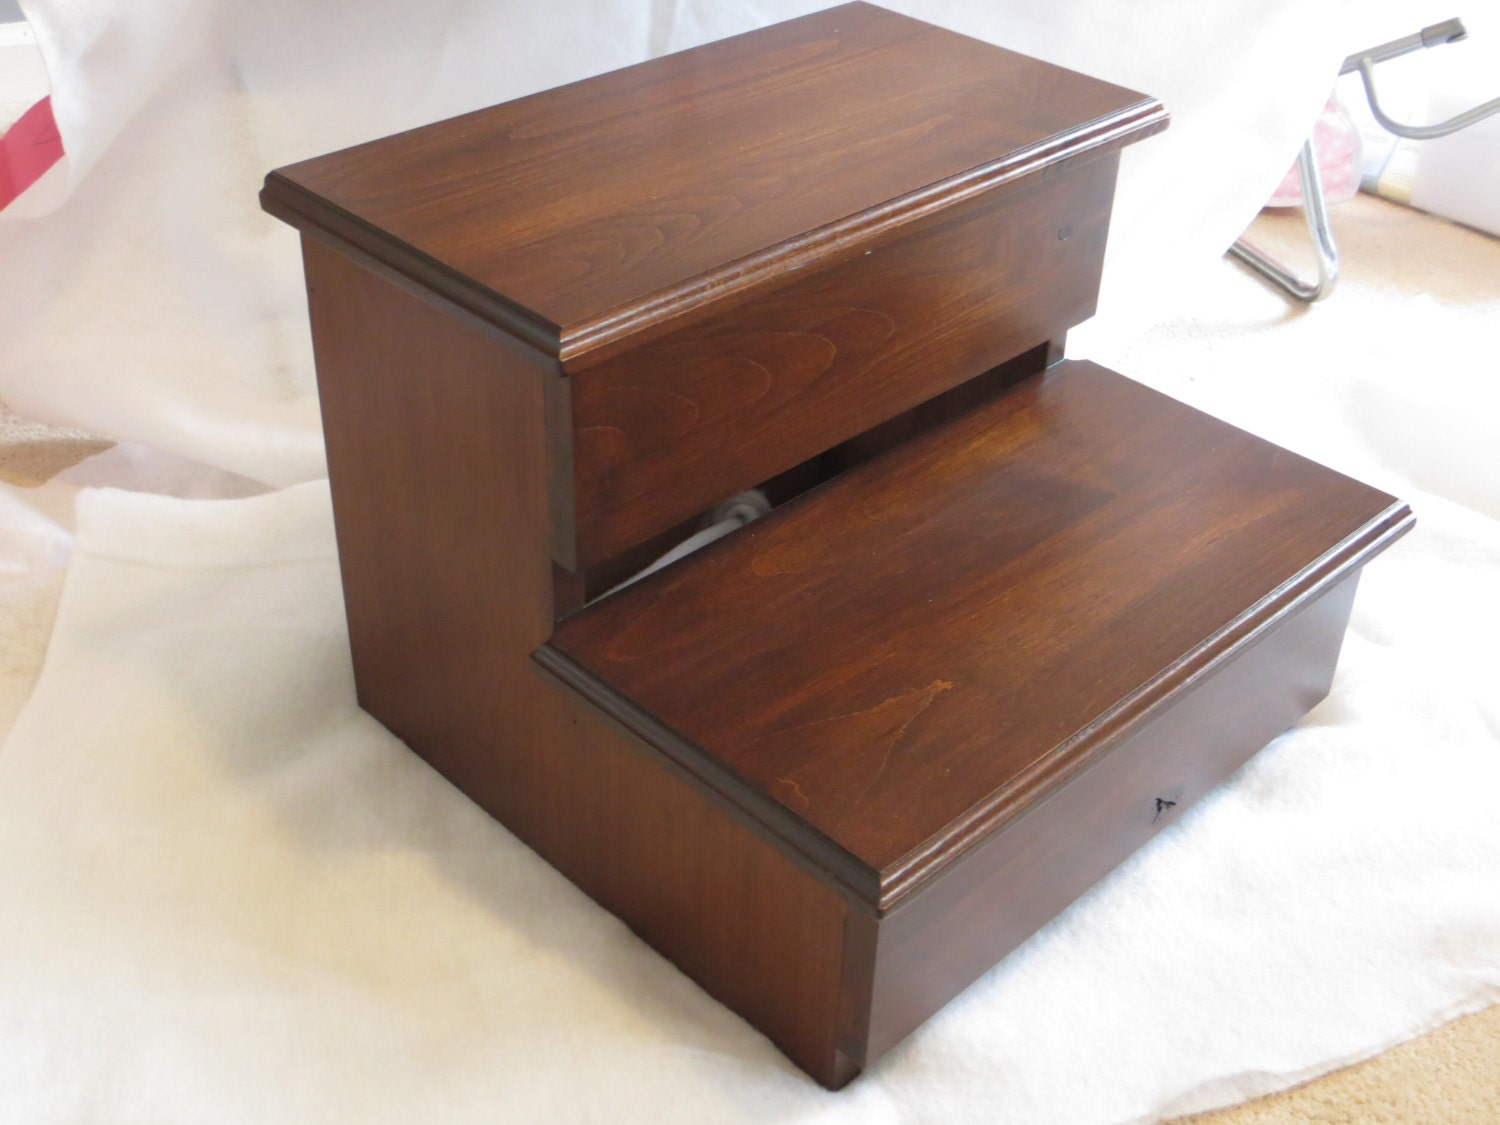 wooden pantry zoom hardwood size adult kitchen alder xl step listing stool il fullxfull wood